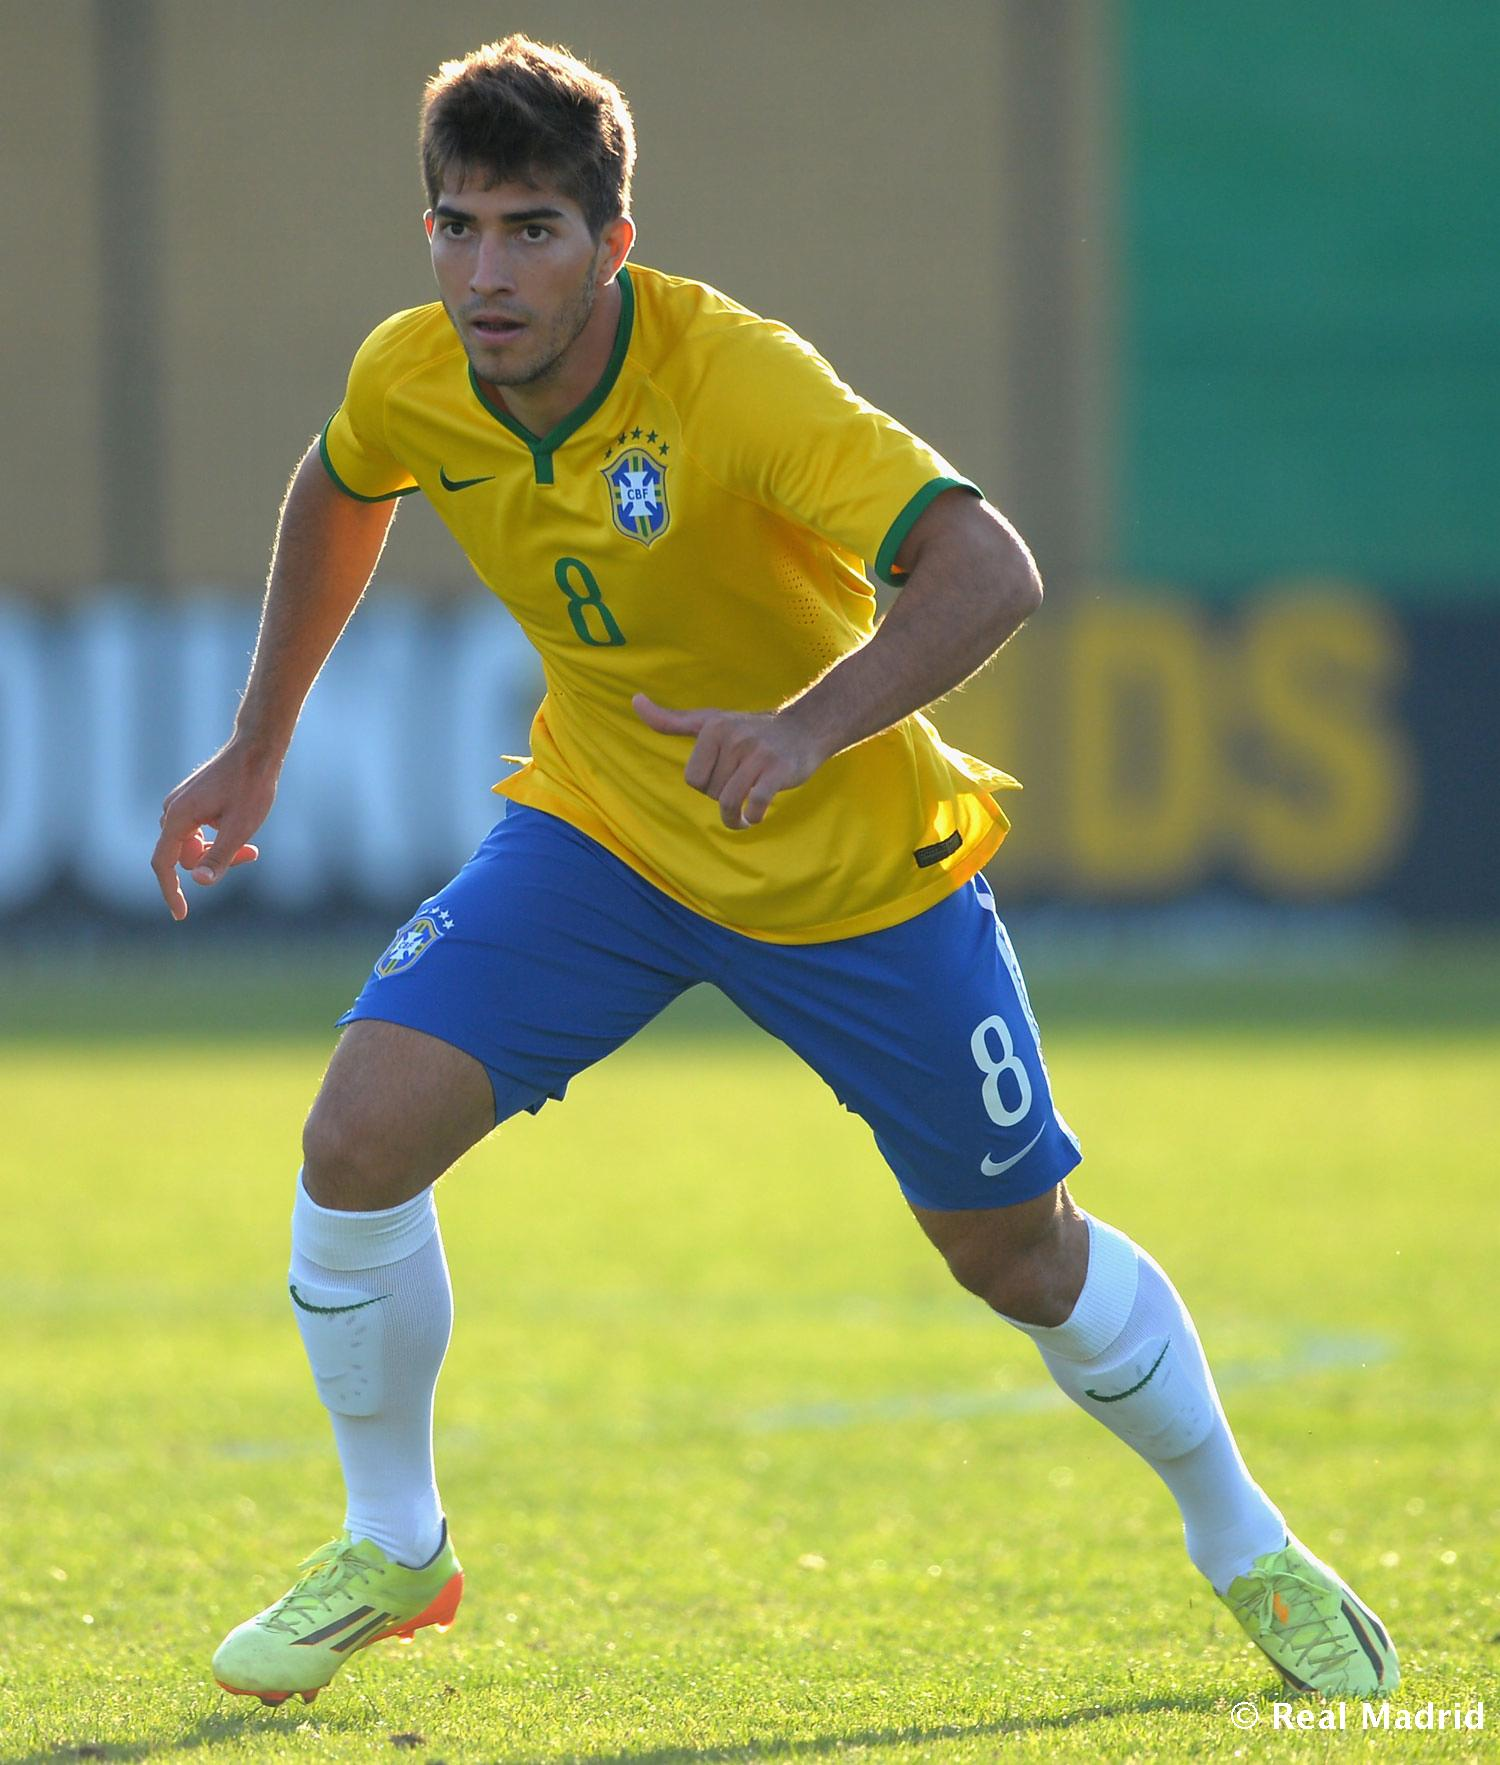 Lucas Silva: Real Madrid CF